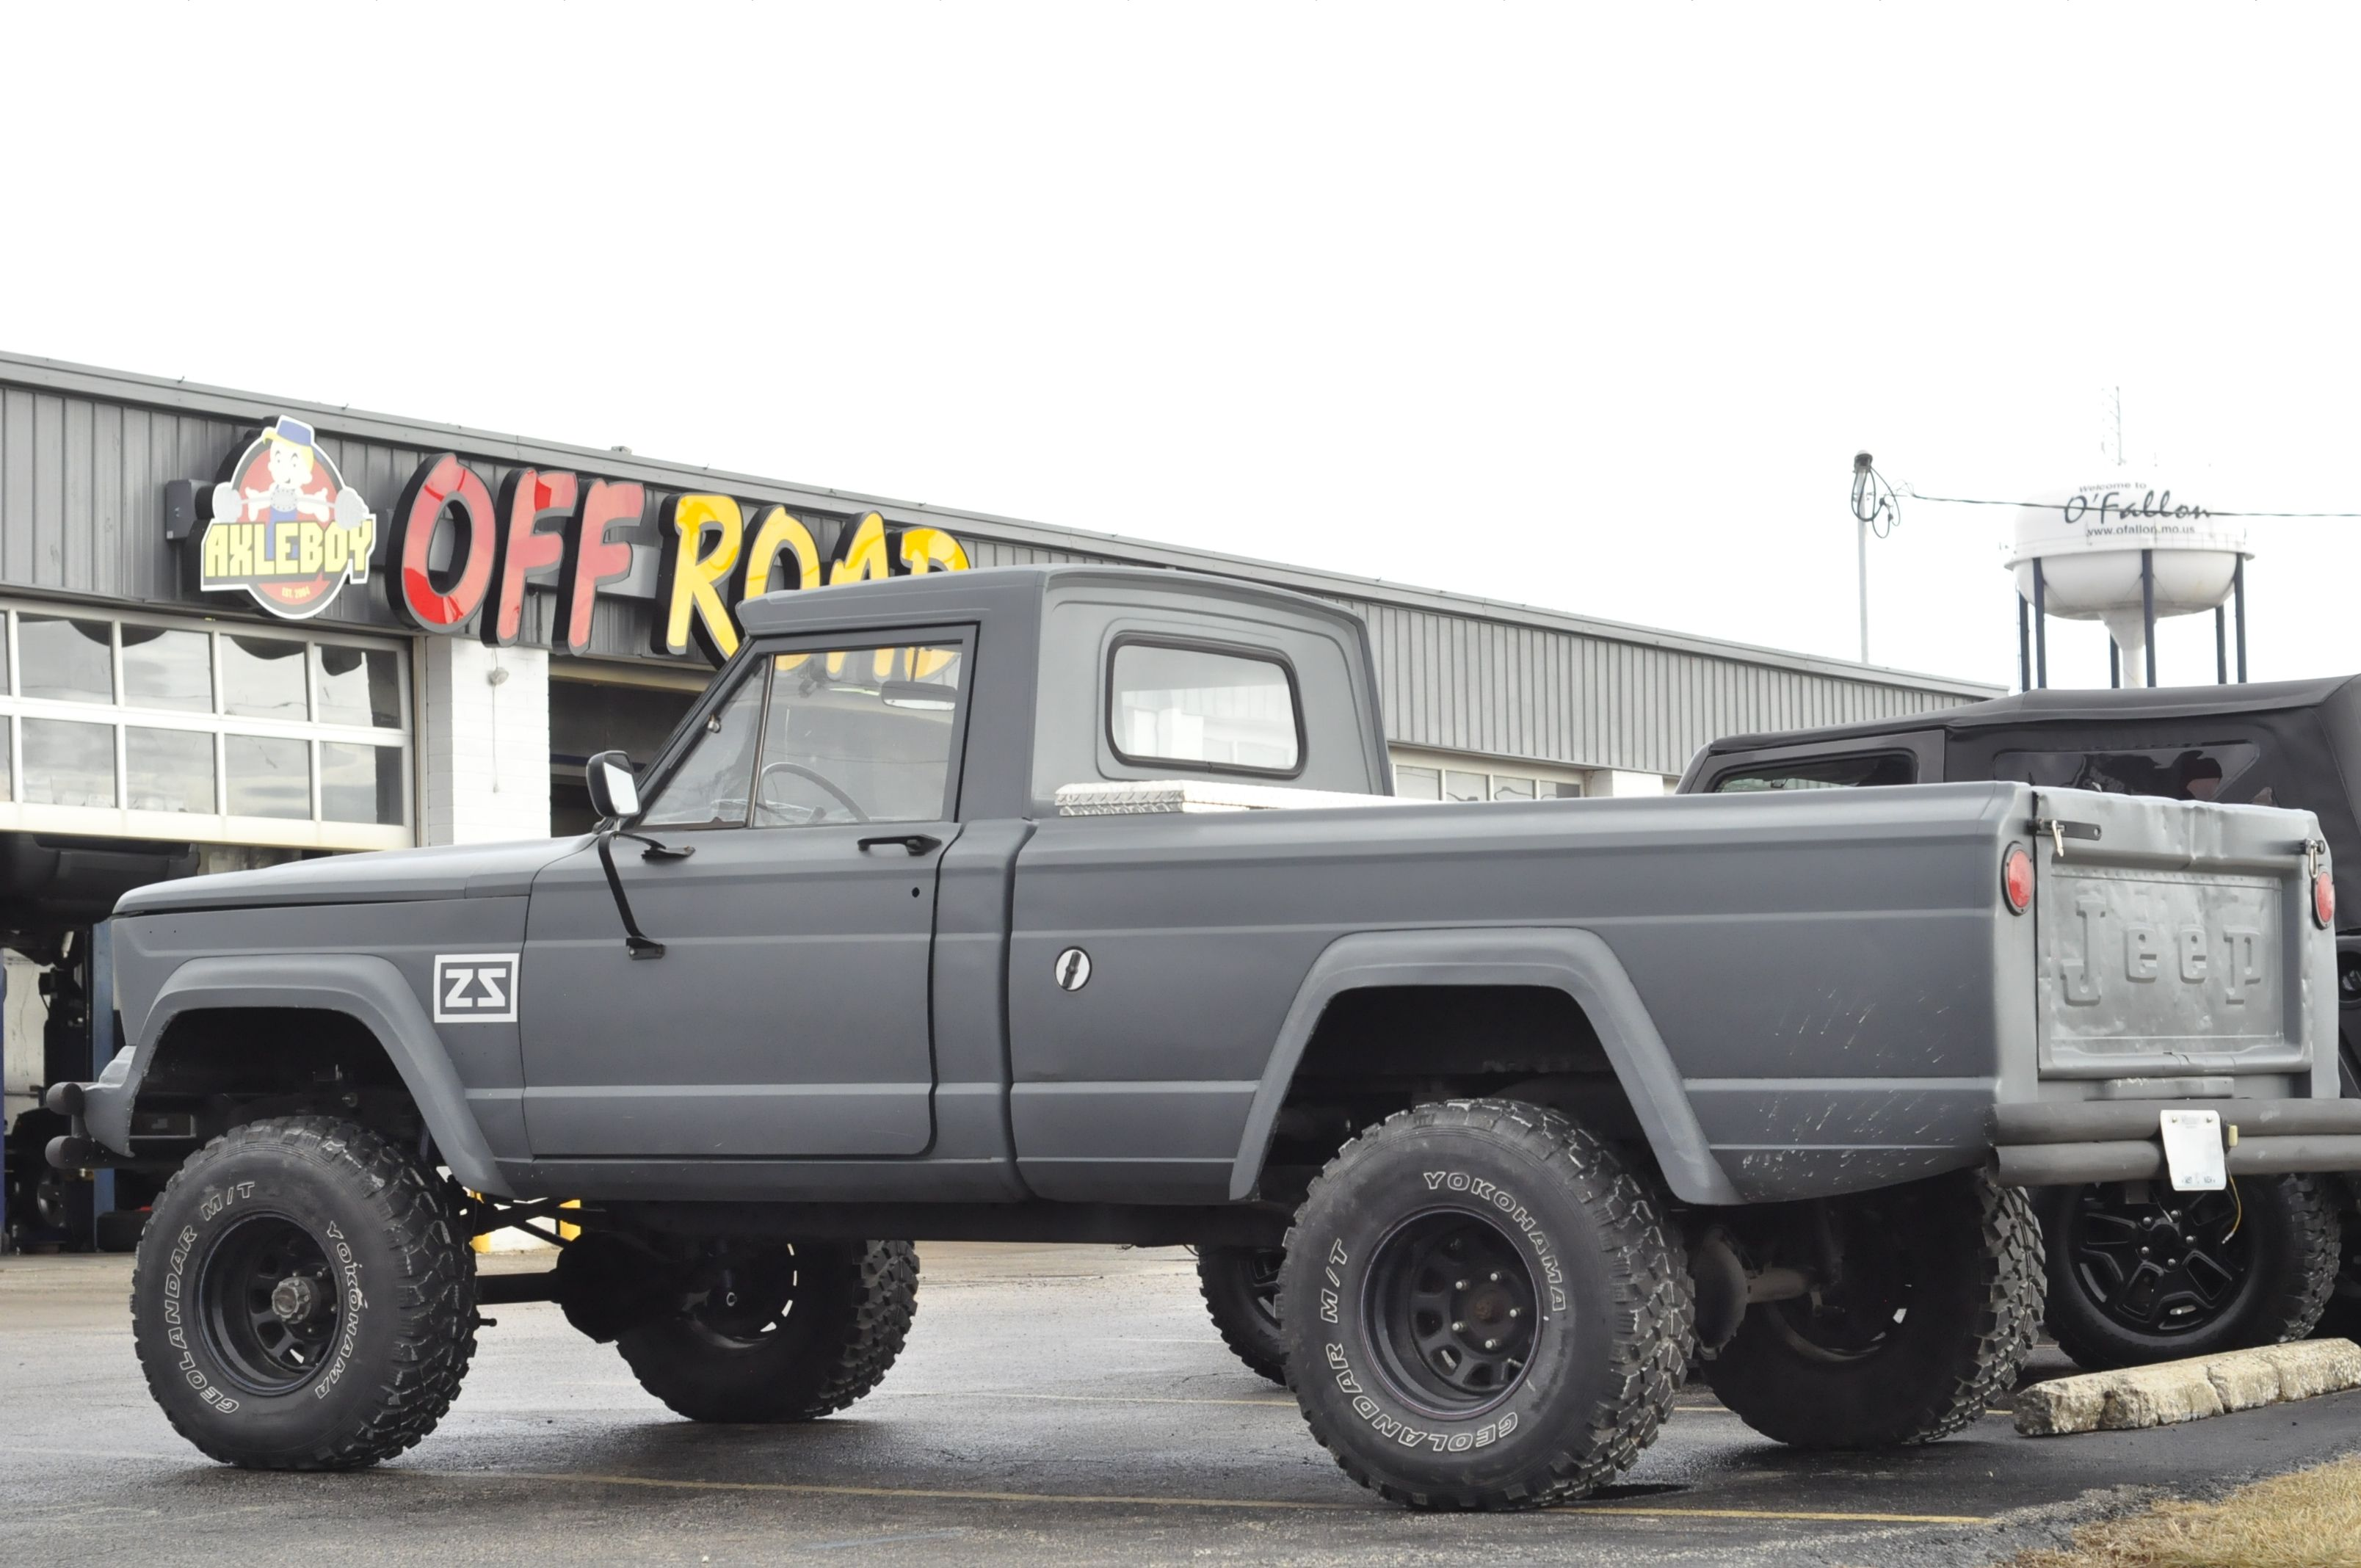 Vintage 1964 Jeep Gladiator At Axleboy Off Road In O Fallon Missouri Axleboy Of Jeep Truck Jeep Gladiator Willys Jeep